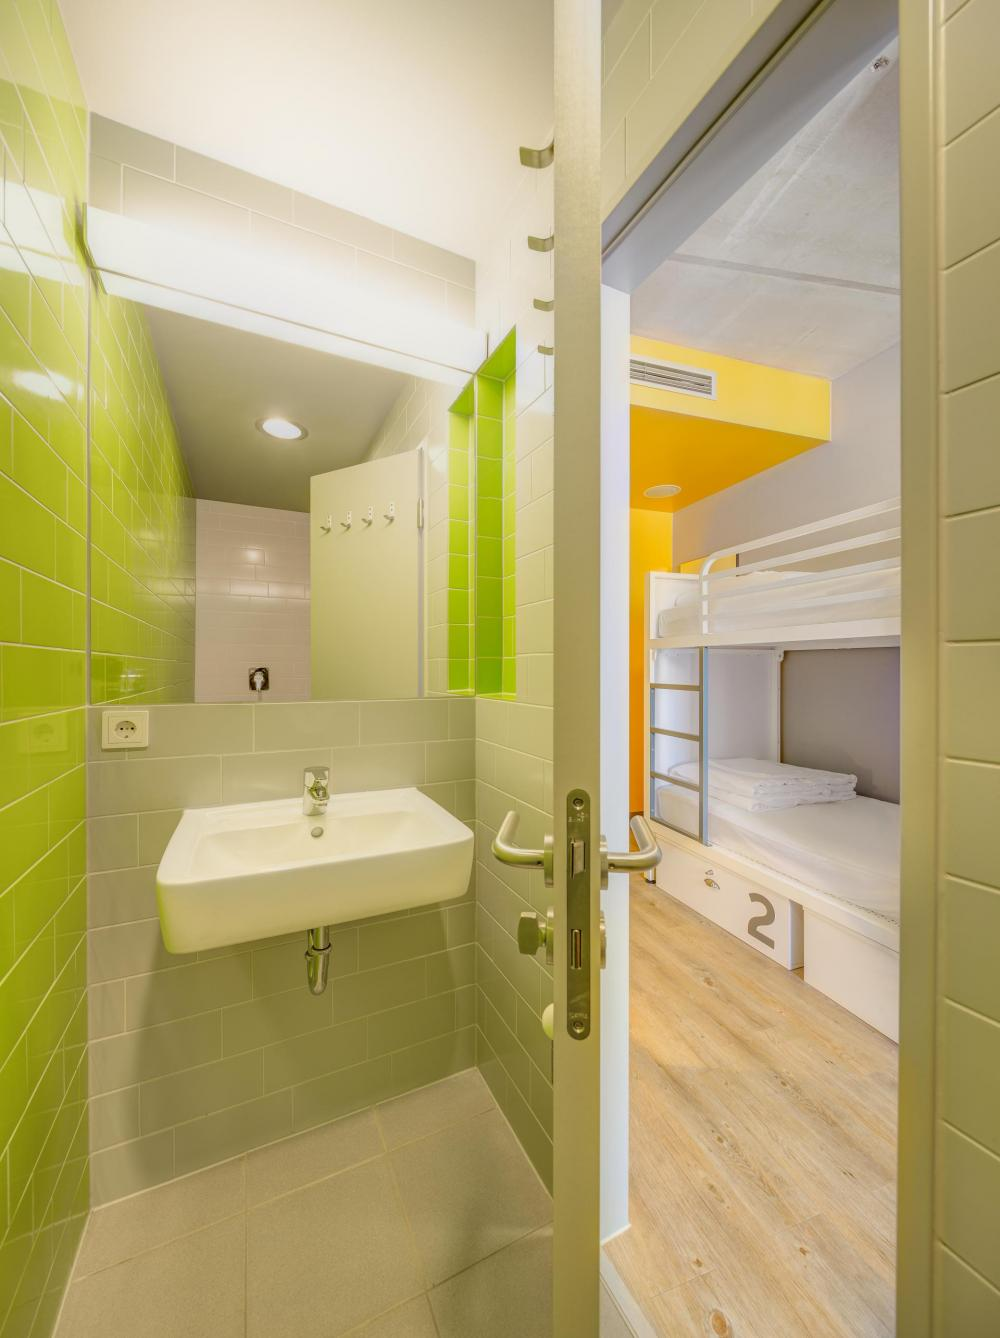 sample view of bathroom and bunk beds